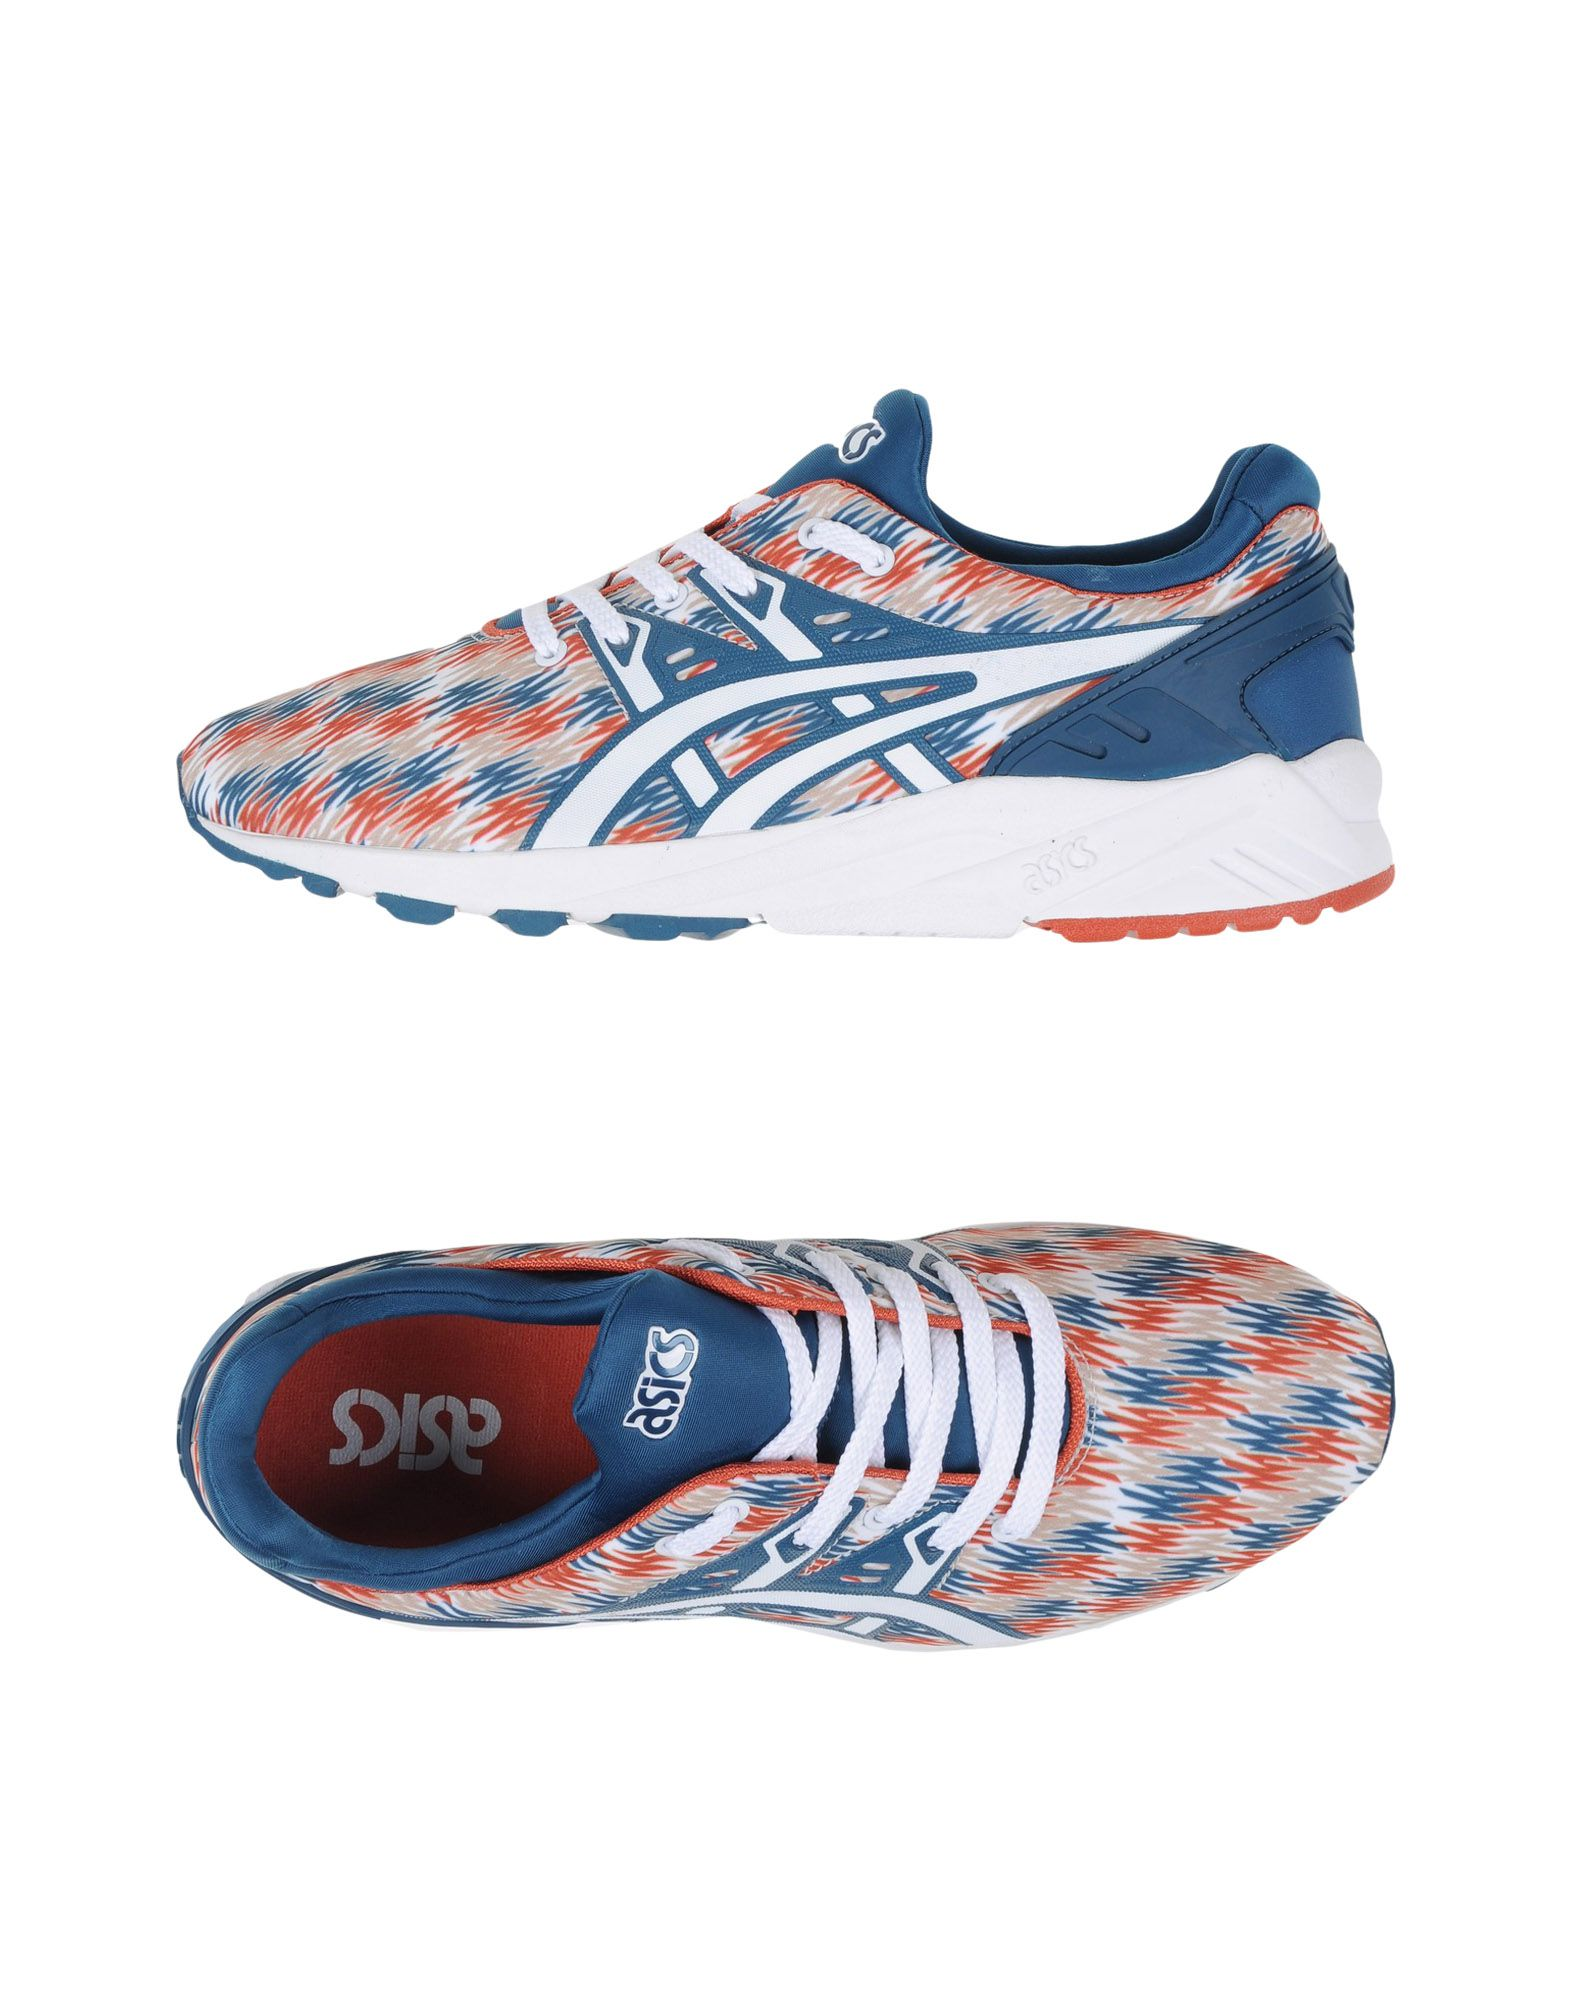 Sneakers Asics Tiger Gel-Kayano Trainer Evo - Femme - Sneakers Asics Tiger sur